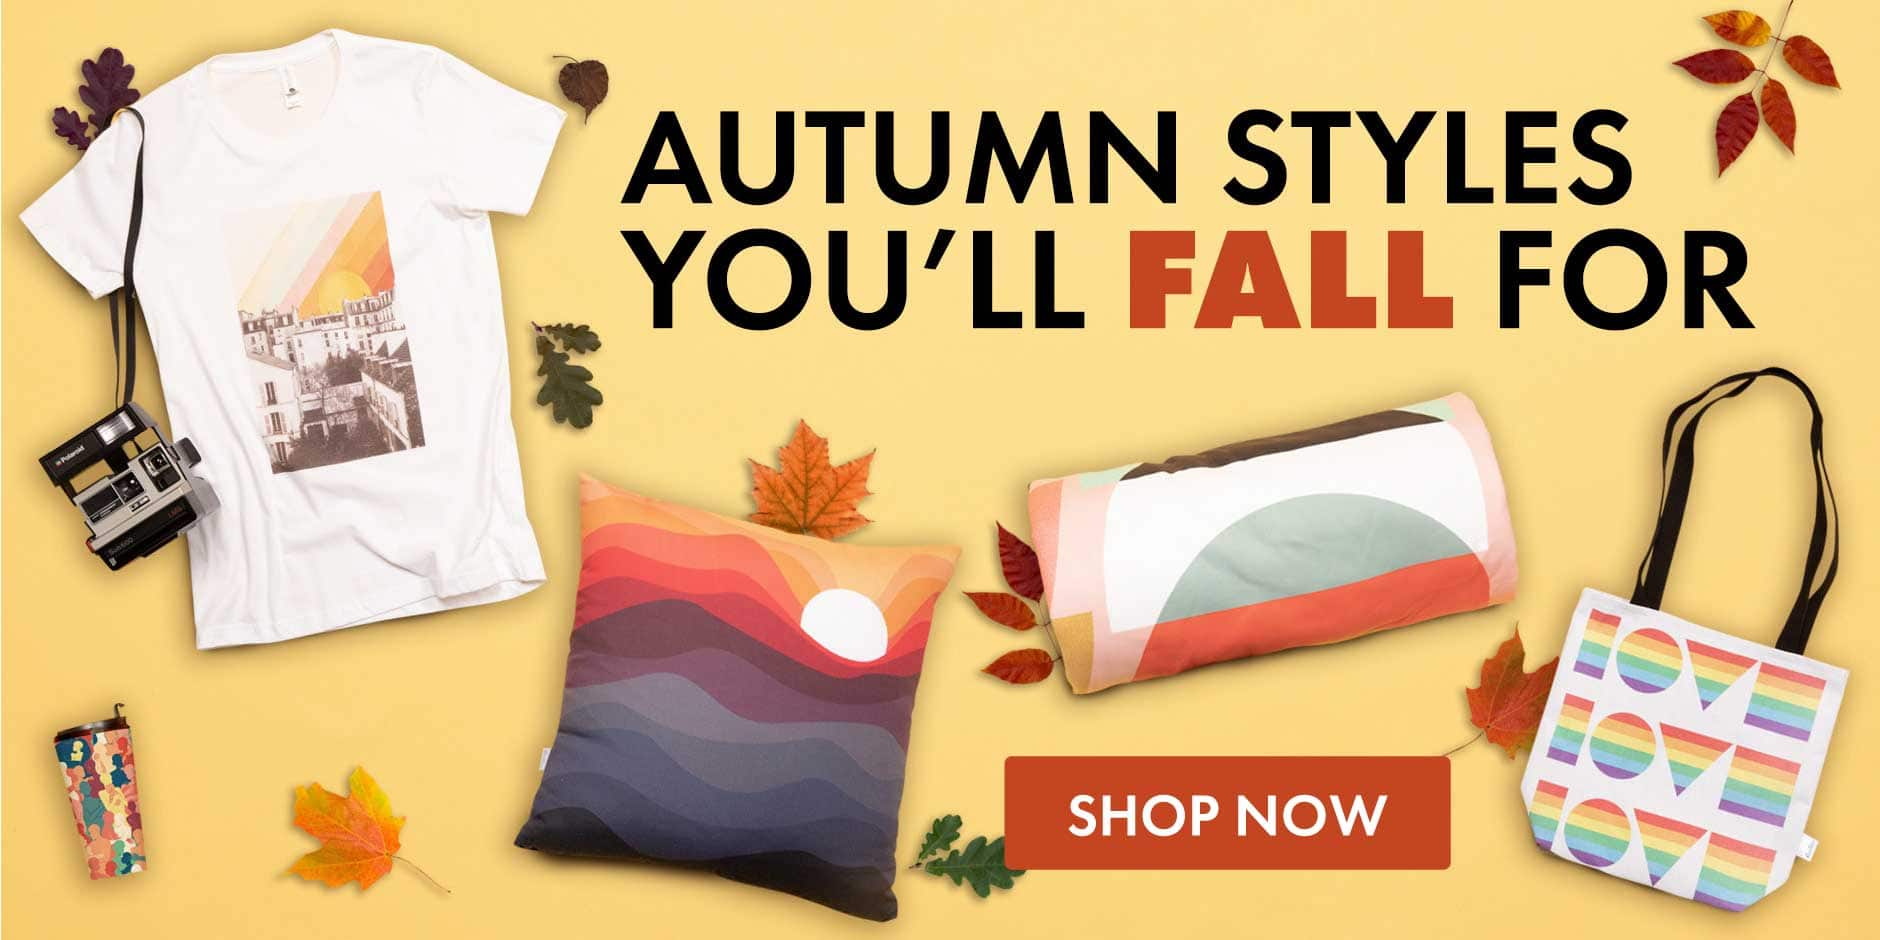 Autumn Styles You'll Fall For